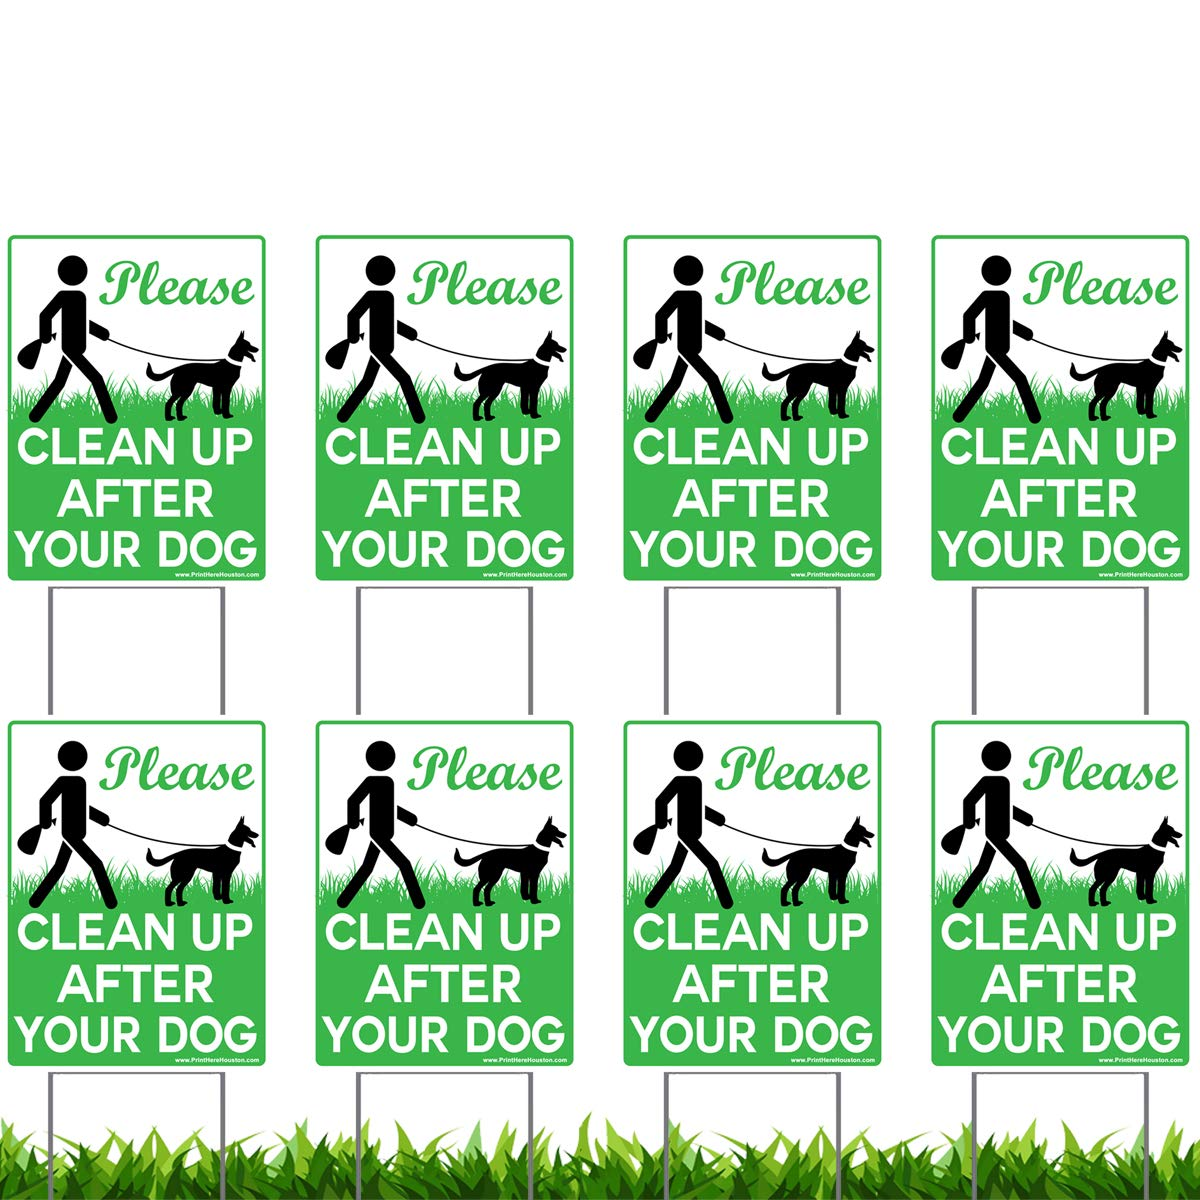 Vibe Ink 8 Pack of 9 x 12'' Please Clean Up After Your Dog - No Pooping Dog Lawn Signs with 8X Metal Wire H-Stakes Stands Included